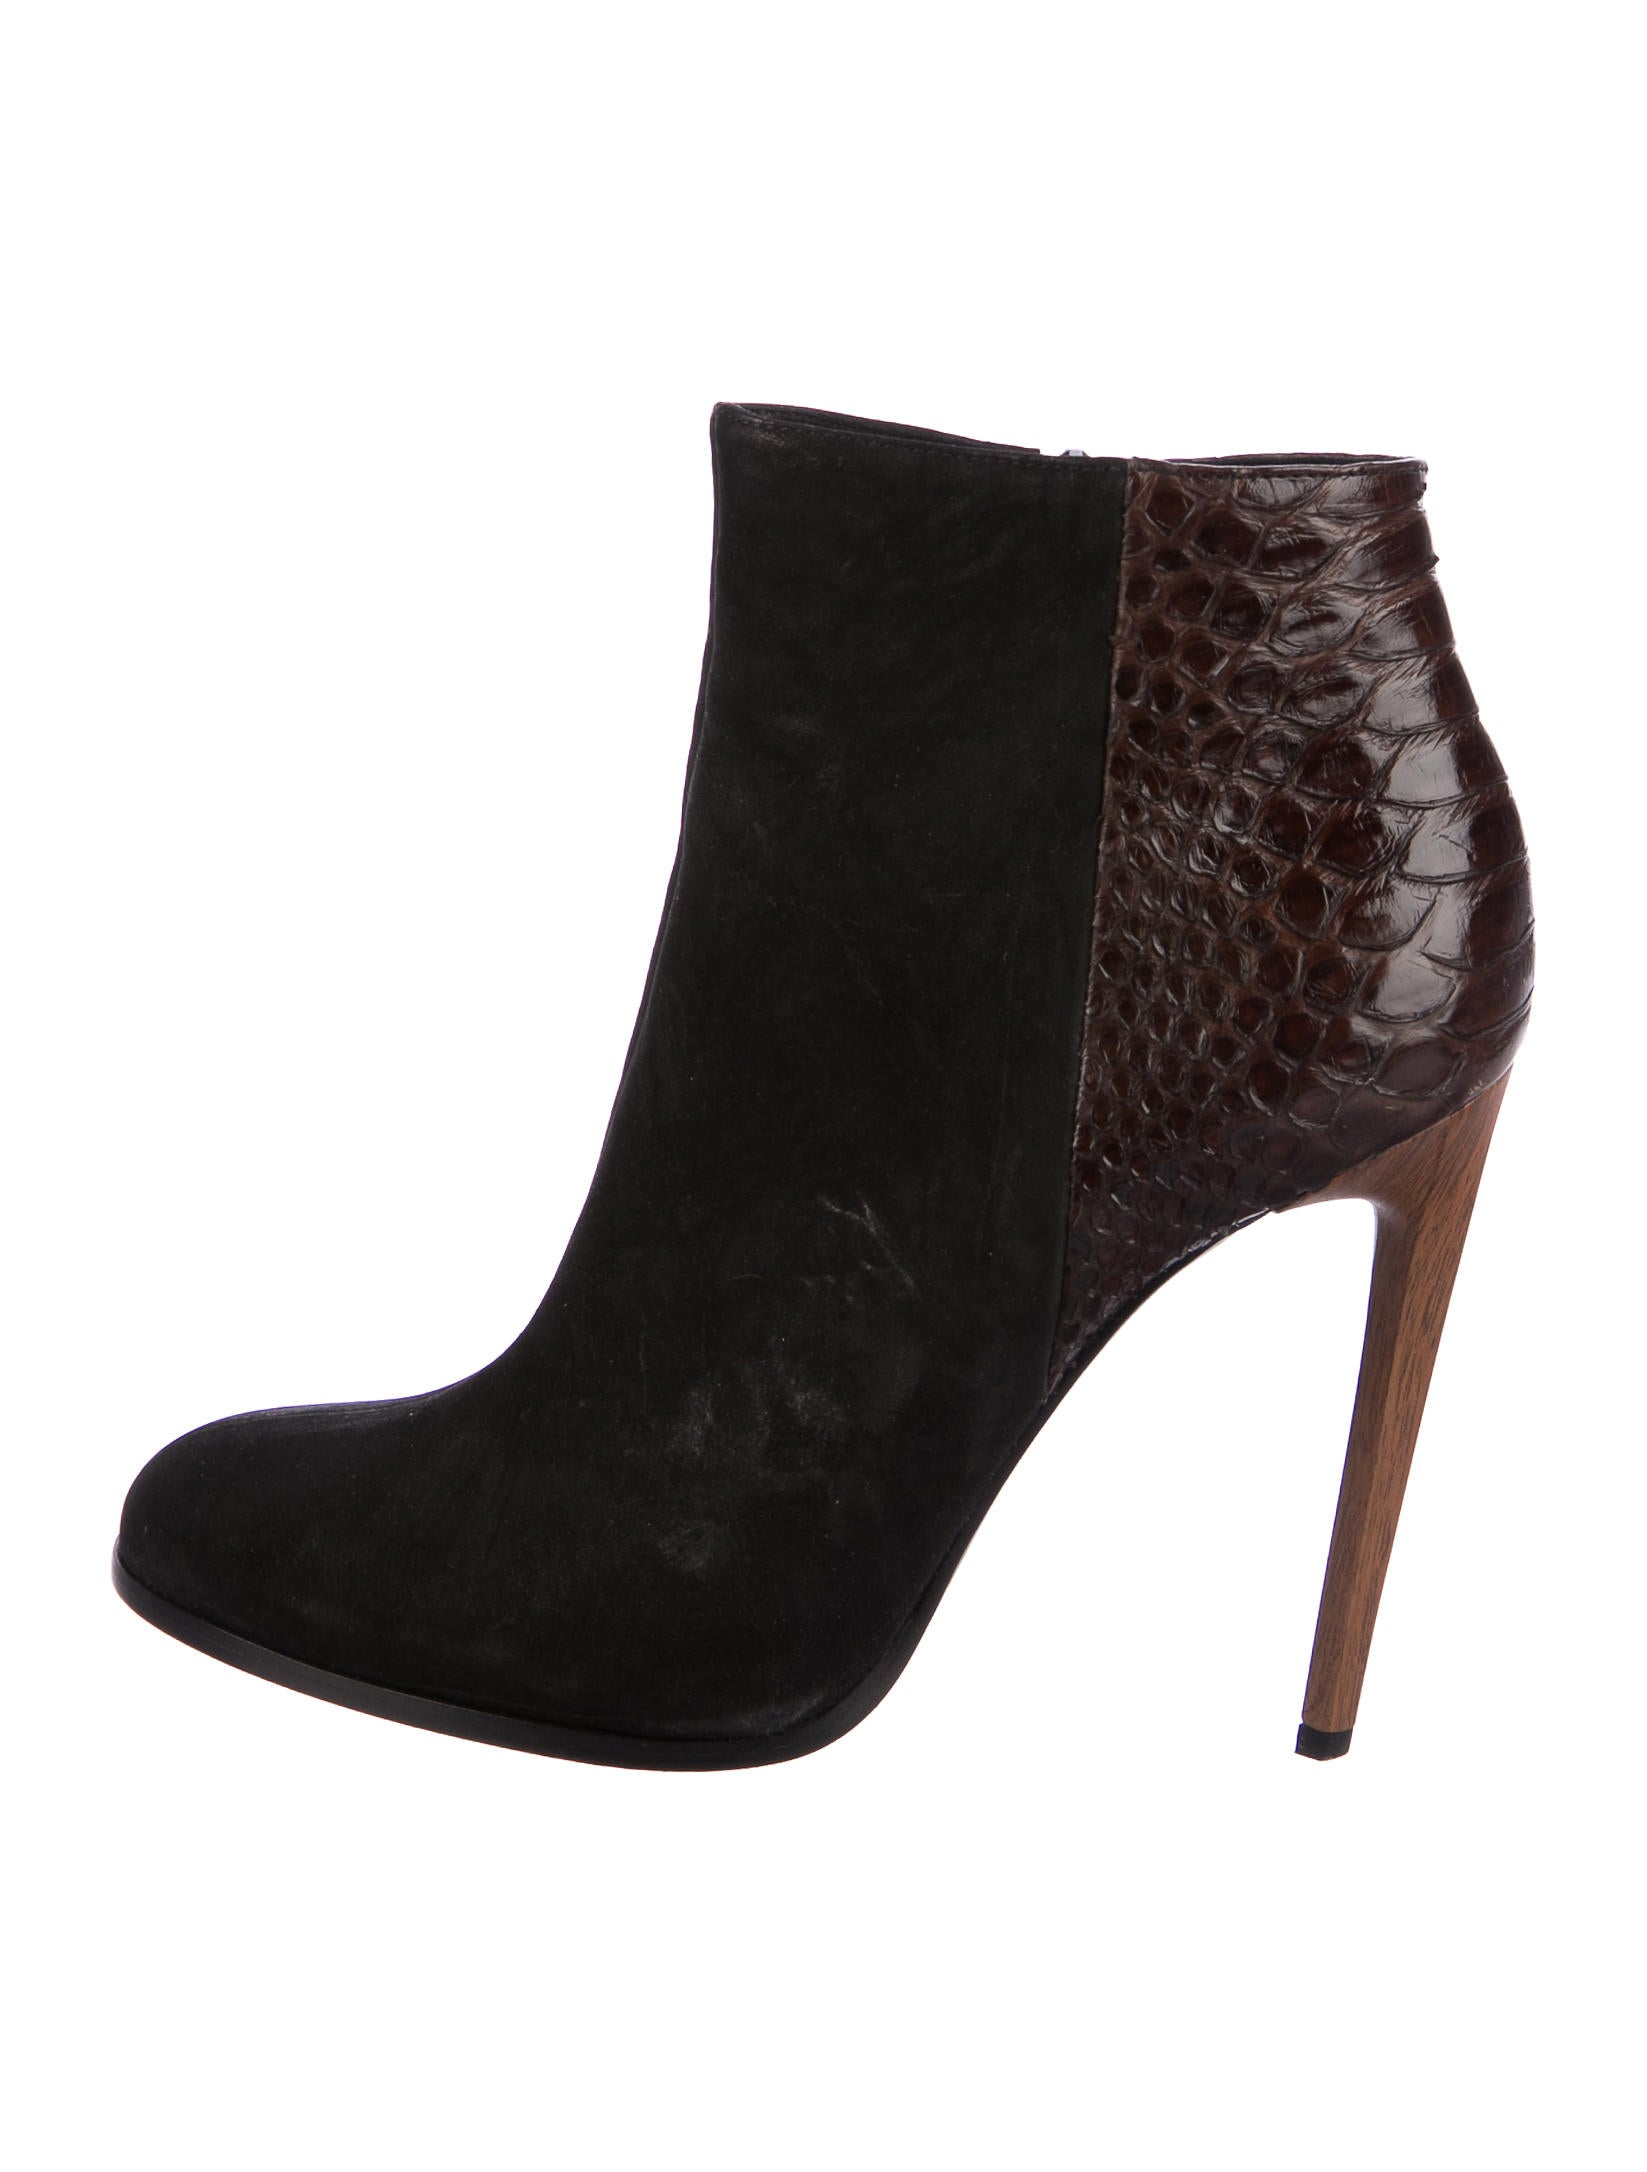 Haider Ackermann Python Round-Toe Ankle Boots fast delivery online cheap how much xGDtkRi